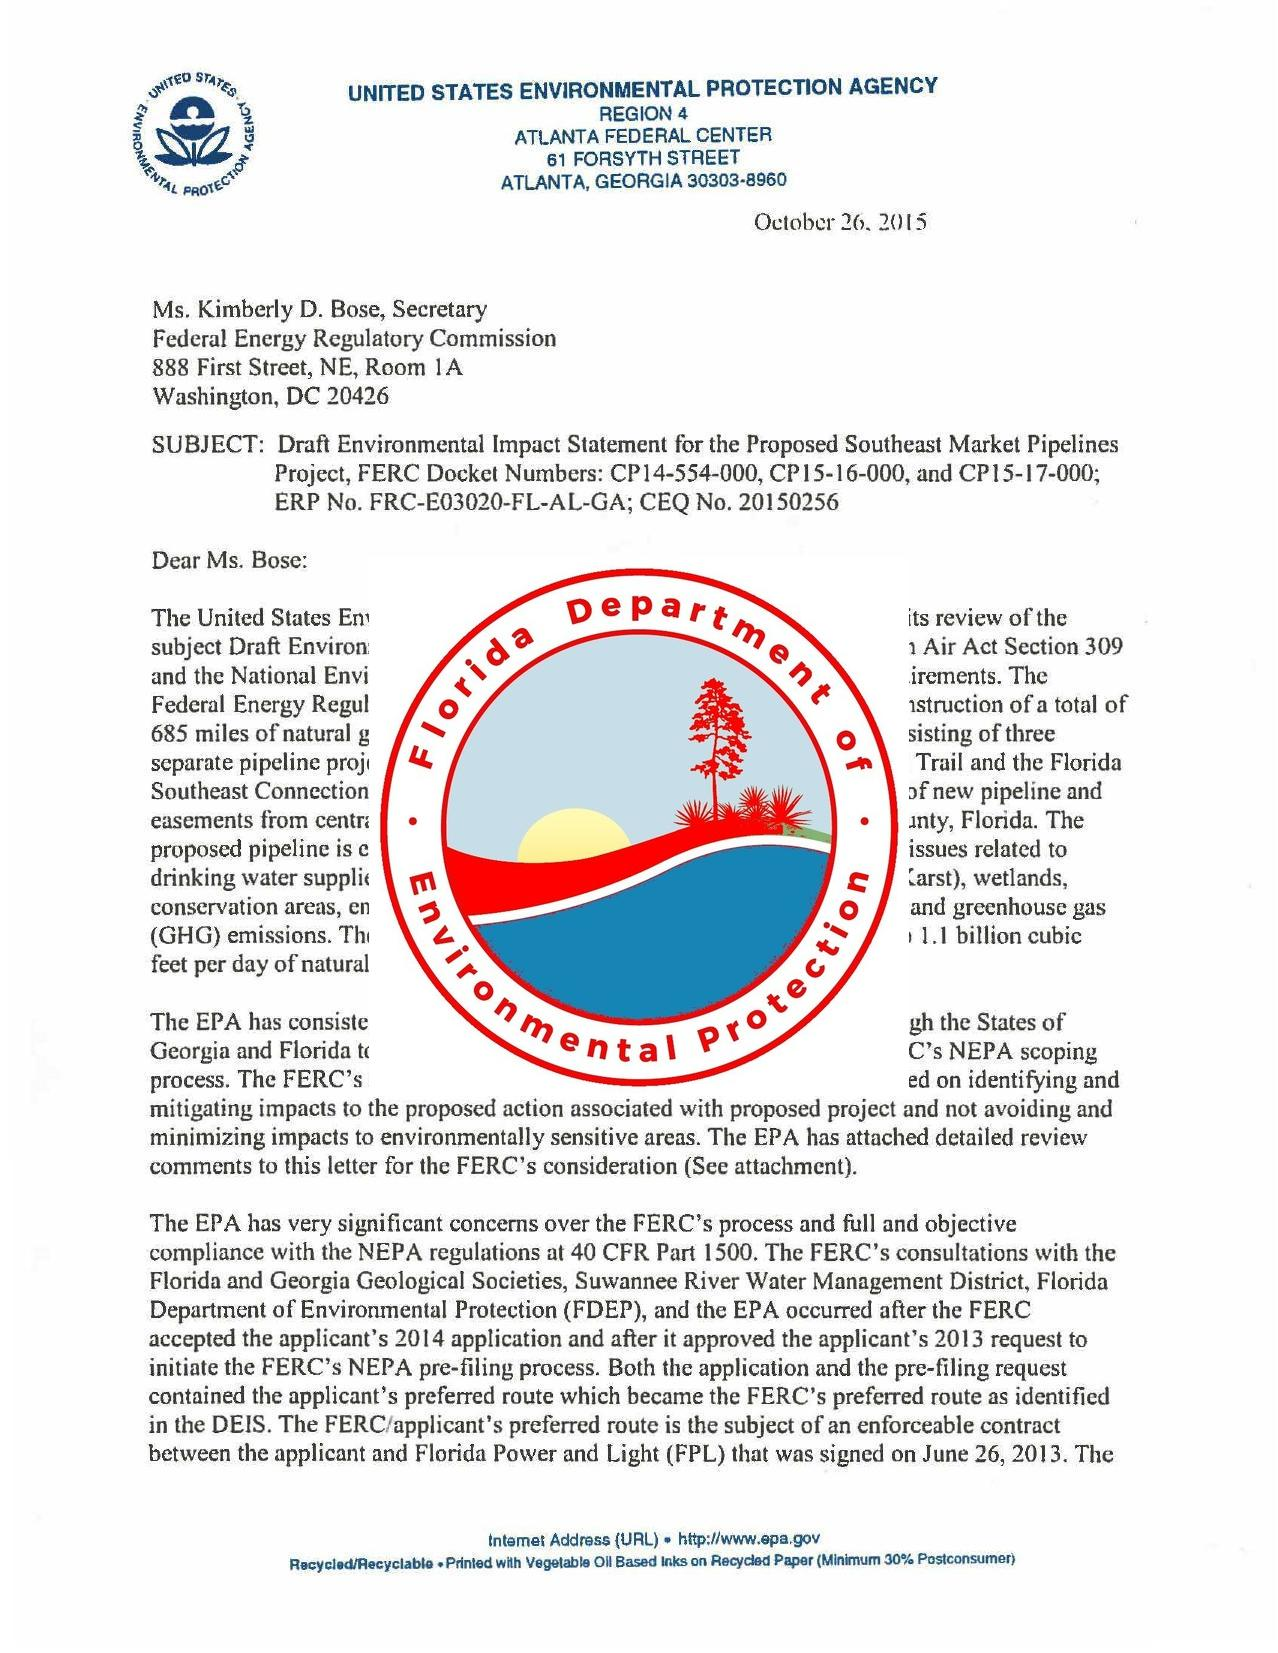 1278x1653 DEP over EPA, in Objections to DEP process and Sabal Trail route through karst limestone of Floridan Aquifer, by EPA, for WWALS.net, 26 October 2015